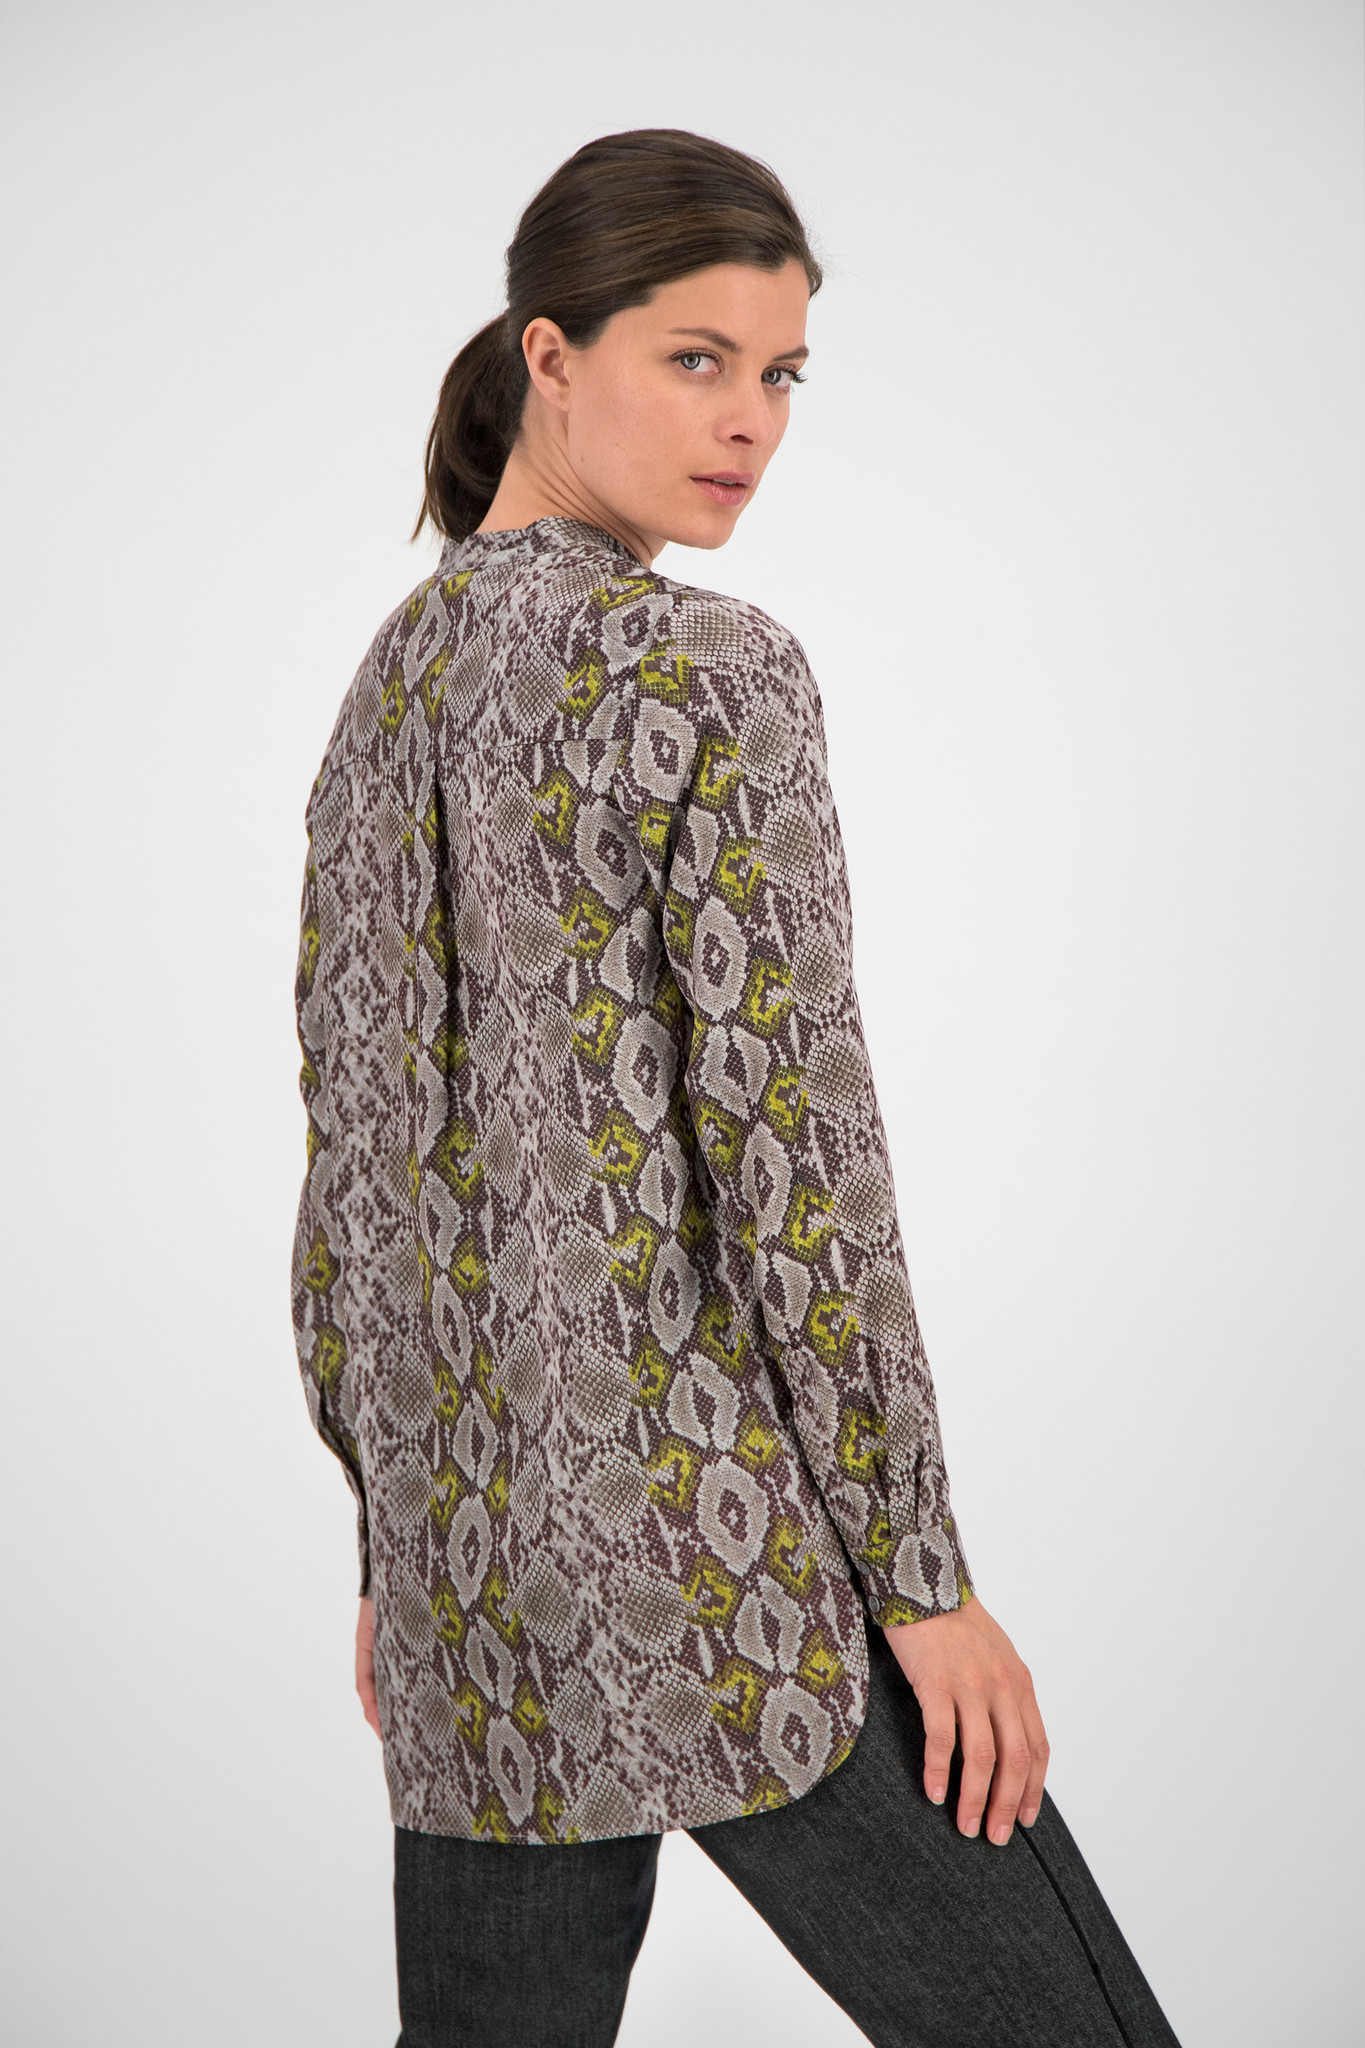 SYLVER Snake Blouse - Light Grey